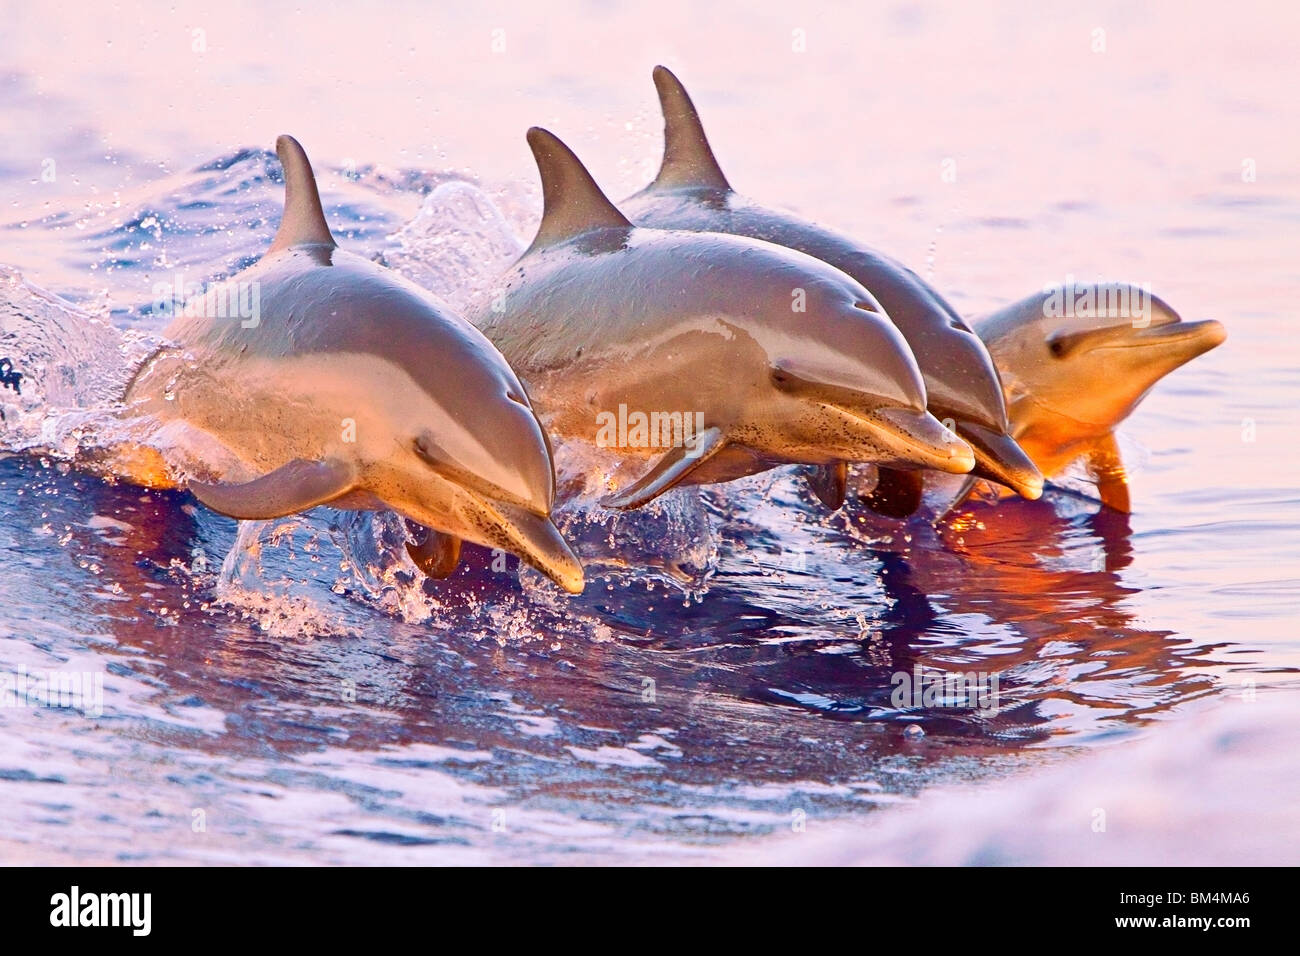 Pantropical Spotted Dolphin, Stenella attenuata, Pacific Ocean, Hawaii, USA - Stock Image